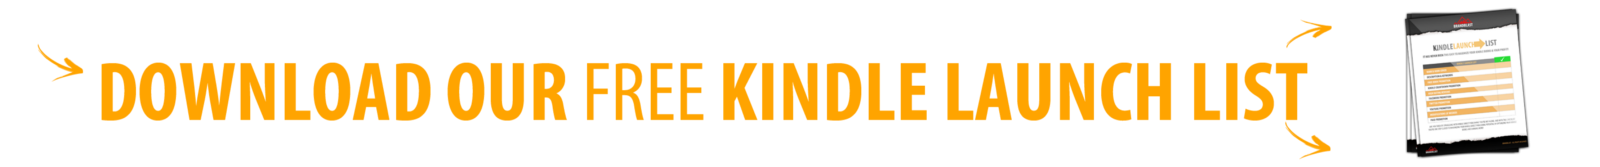 DOWNLOAD OUR FREE KINDLE LAUNCHLIST